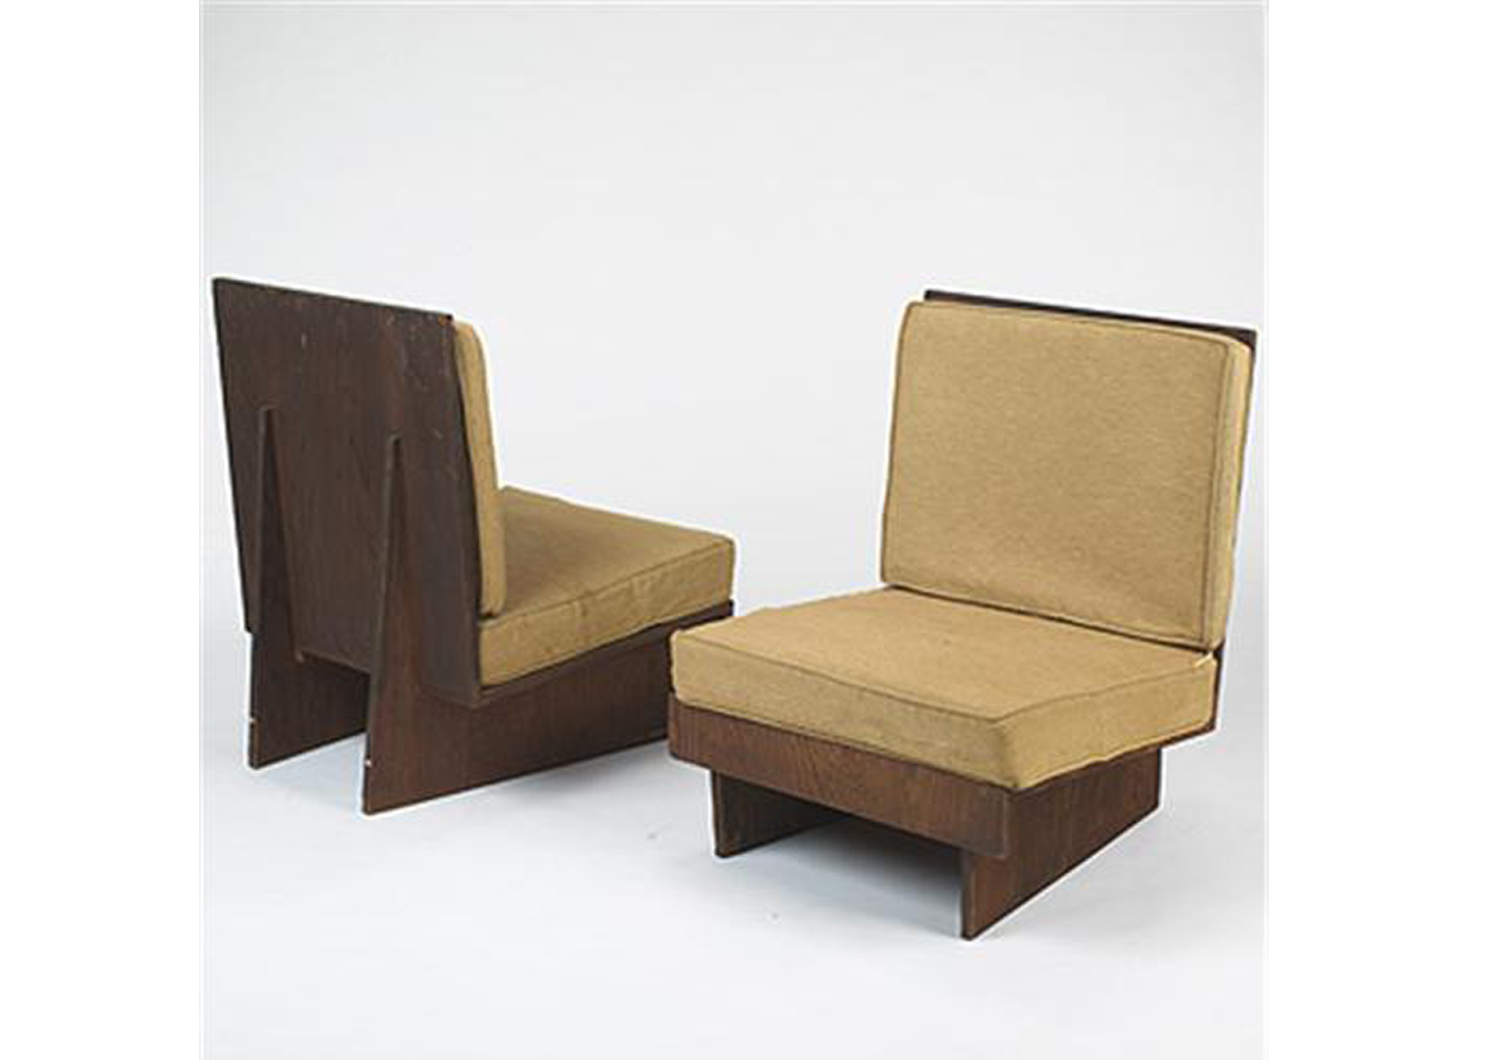 Frank Lloyd Wright: A chair from the Sweenton house